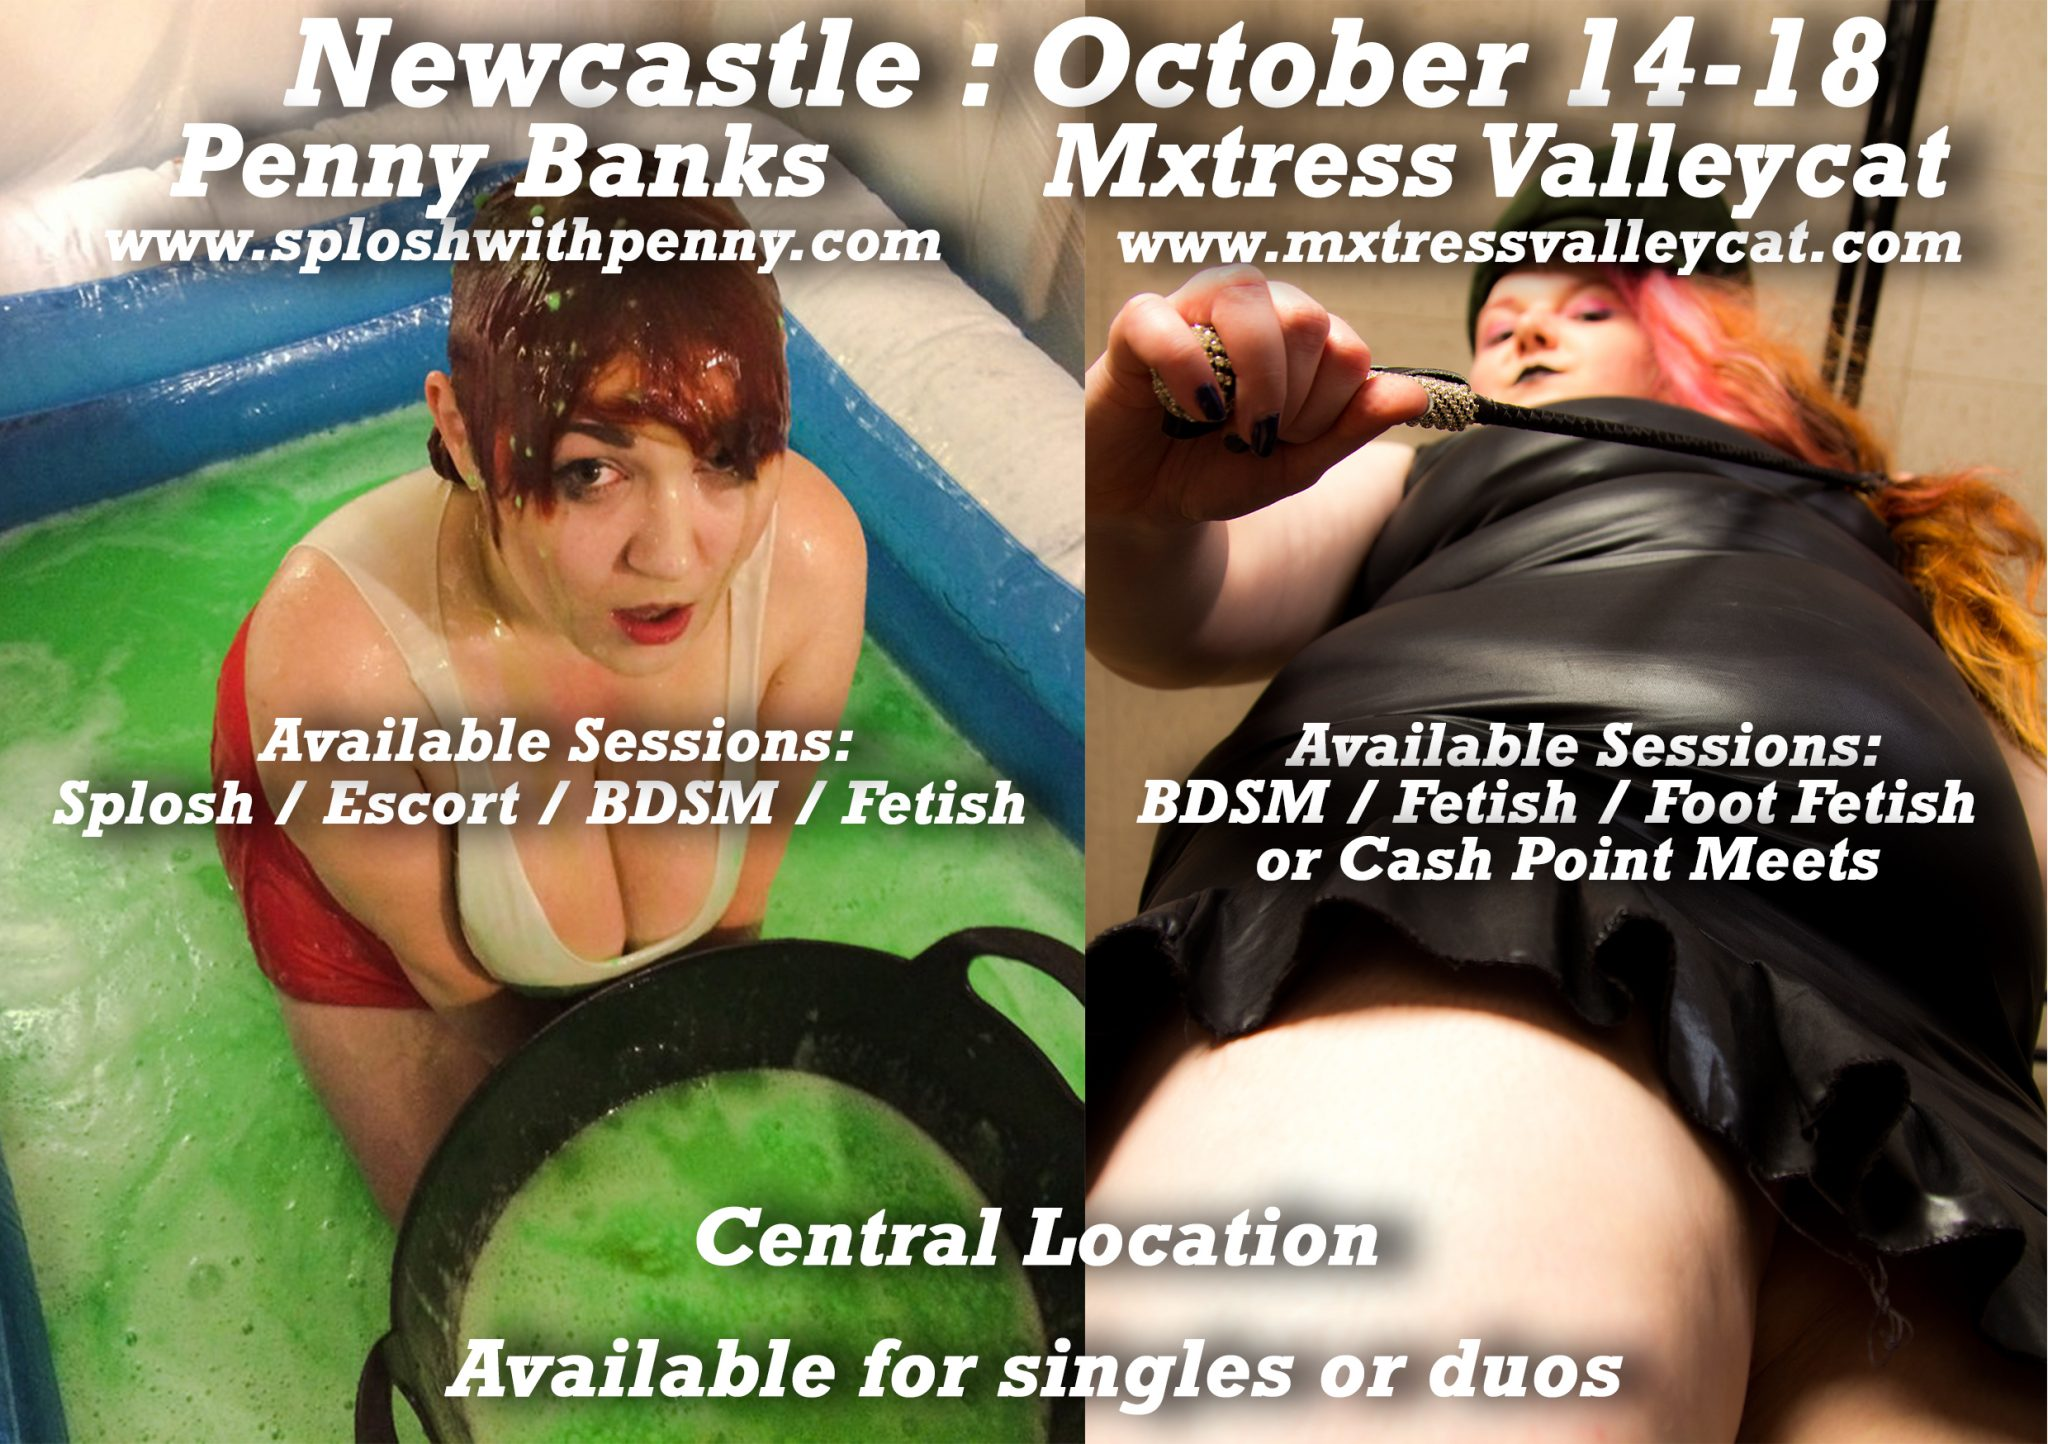 doubles - Newcastle : Doubles with Penny Banks